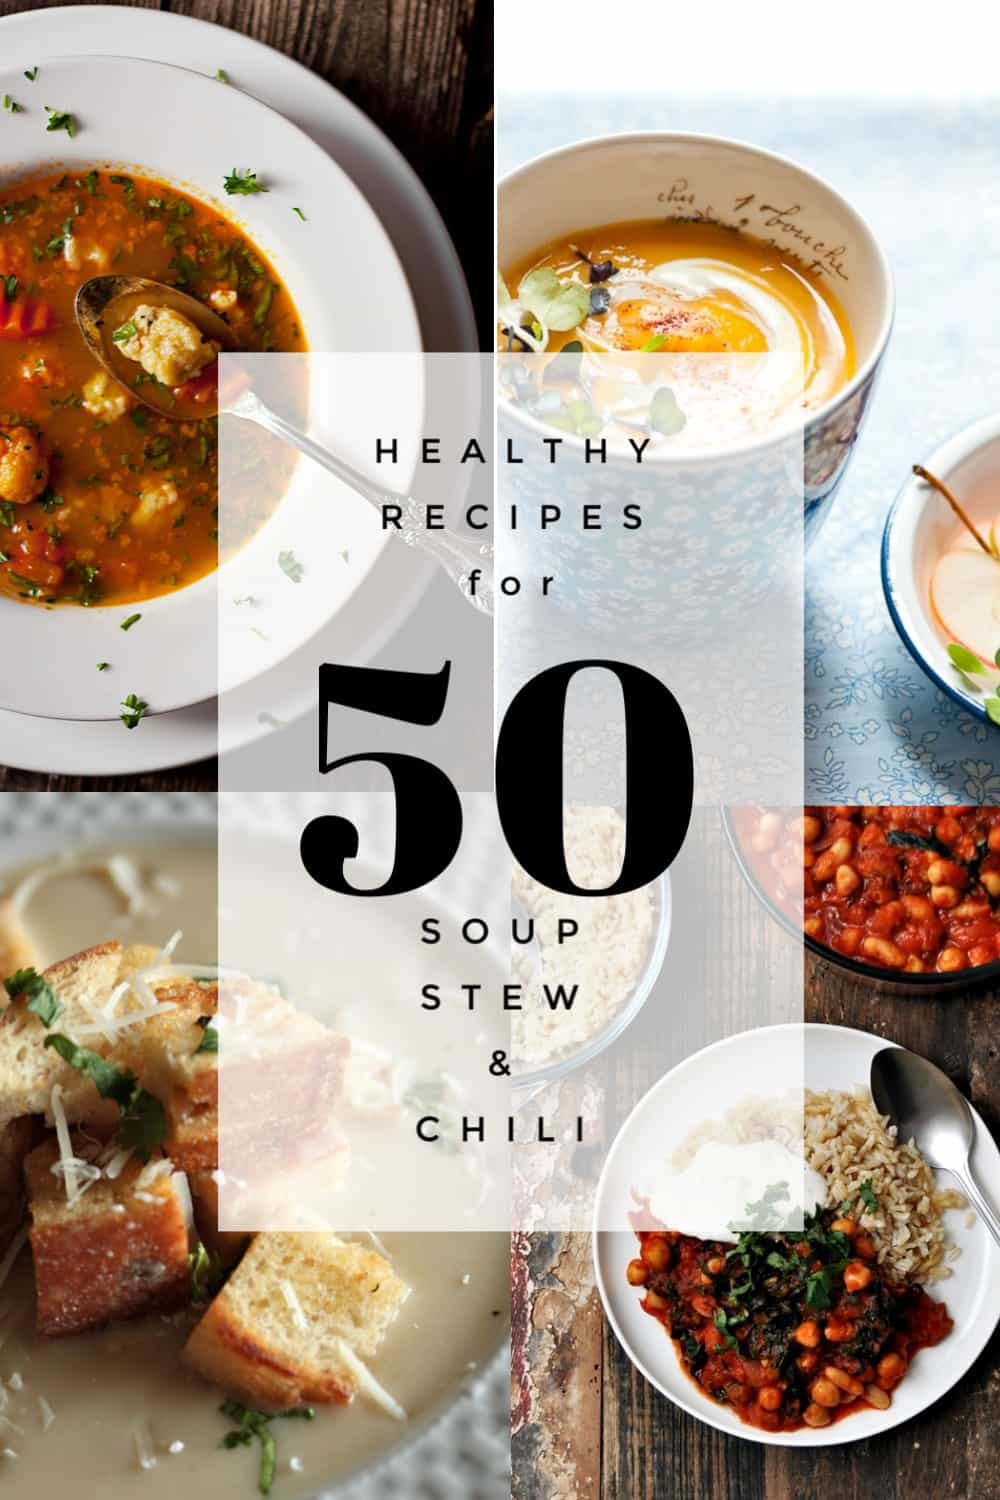 50 Healthy Soup, Stew, and Chili Recipes - vegan, paleo, keto and vegetarian options!